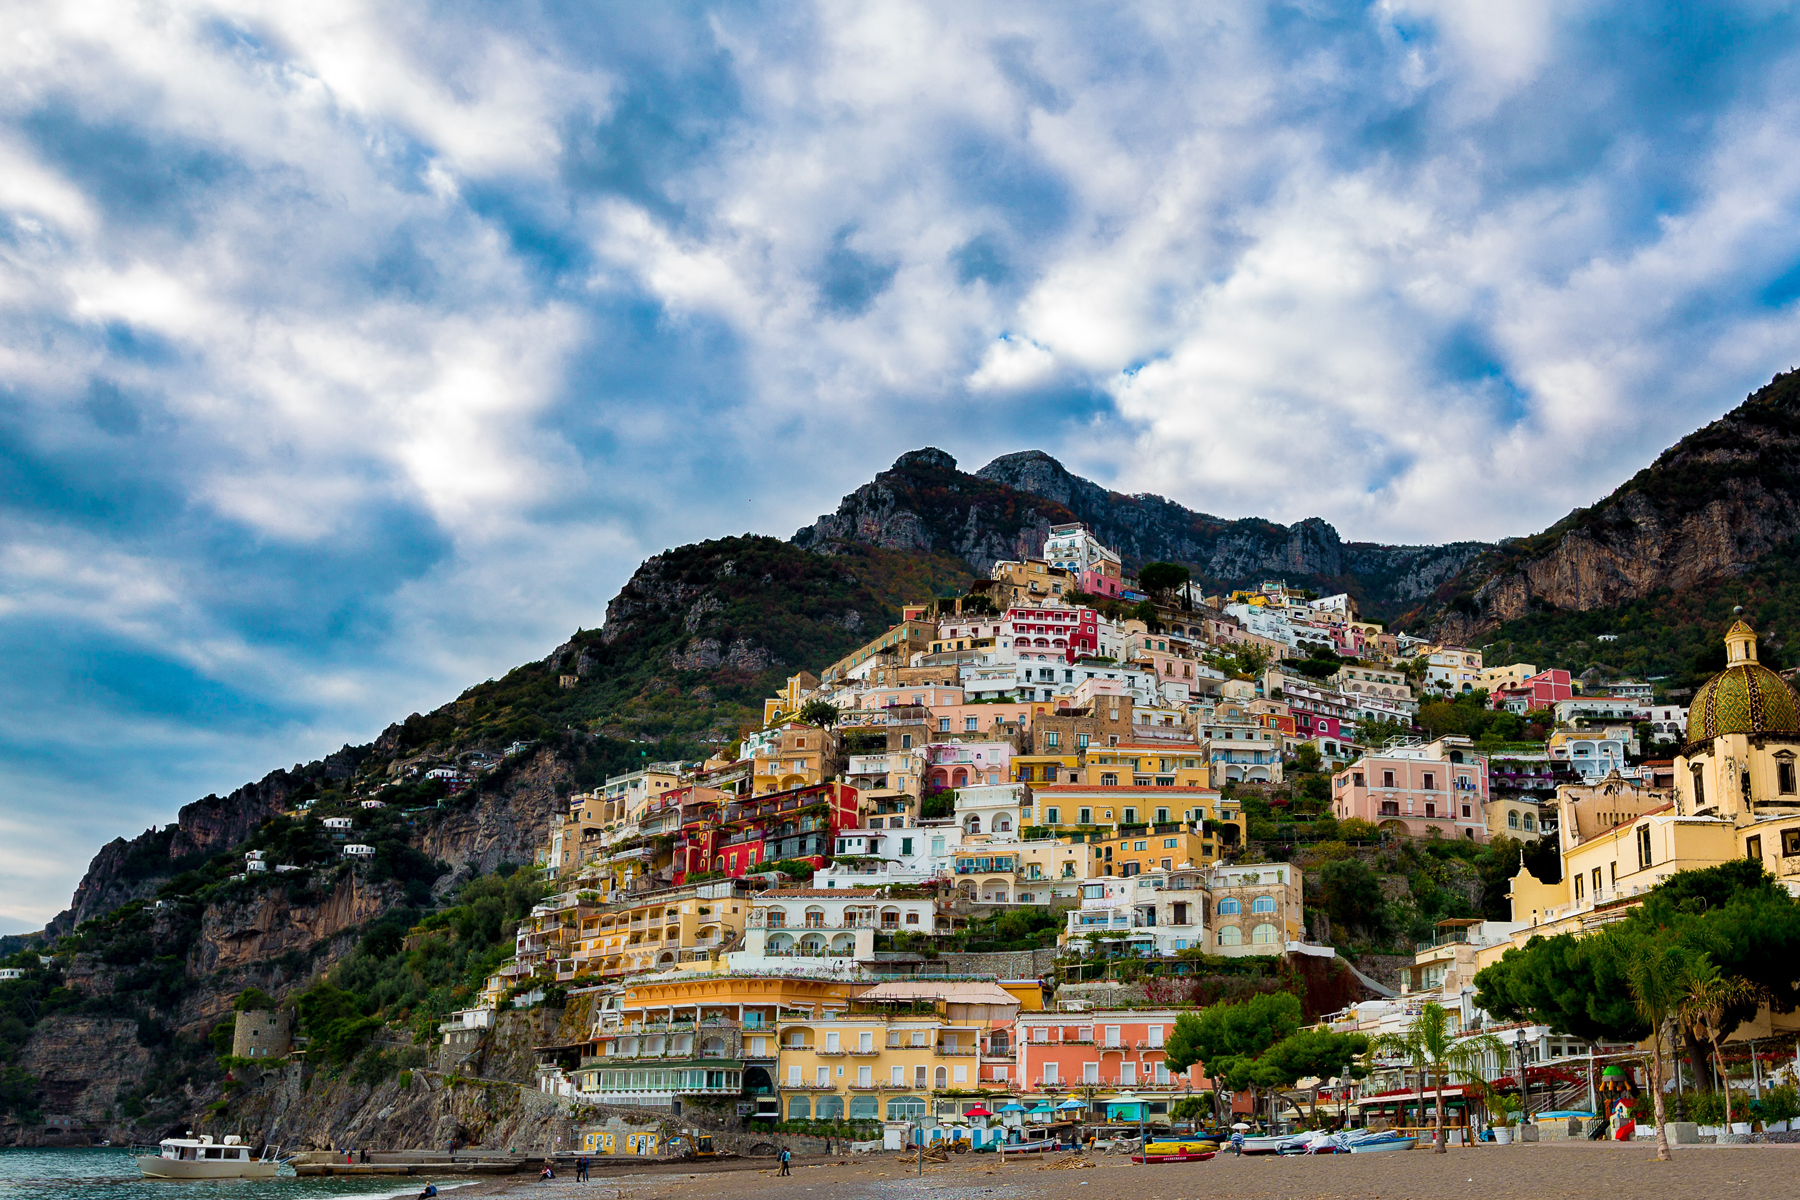 View of Positano, Italy from a distance.